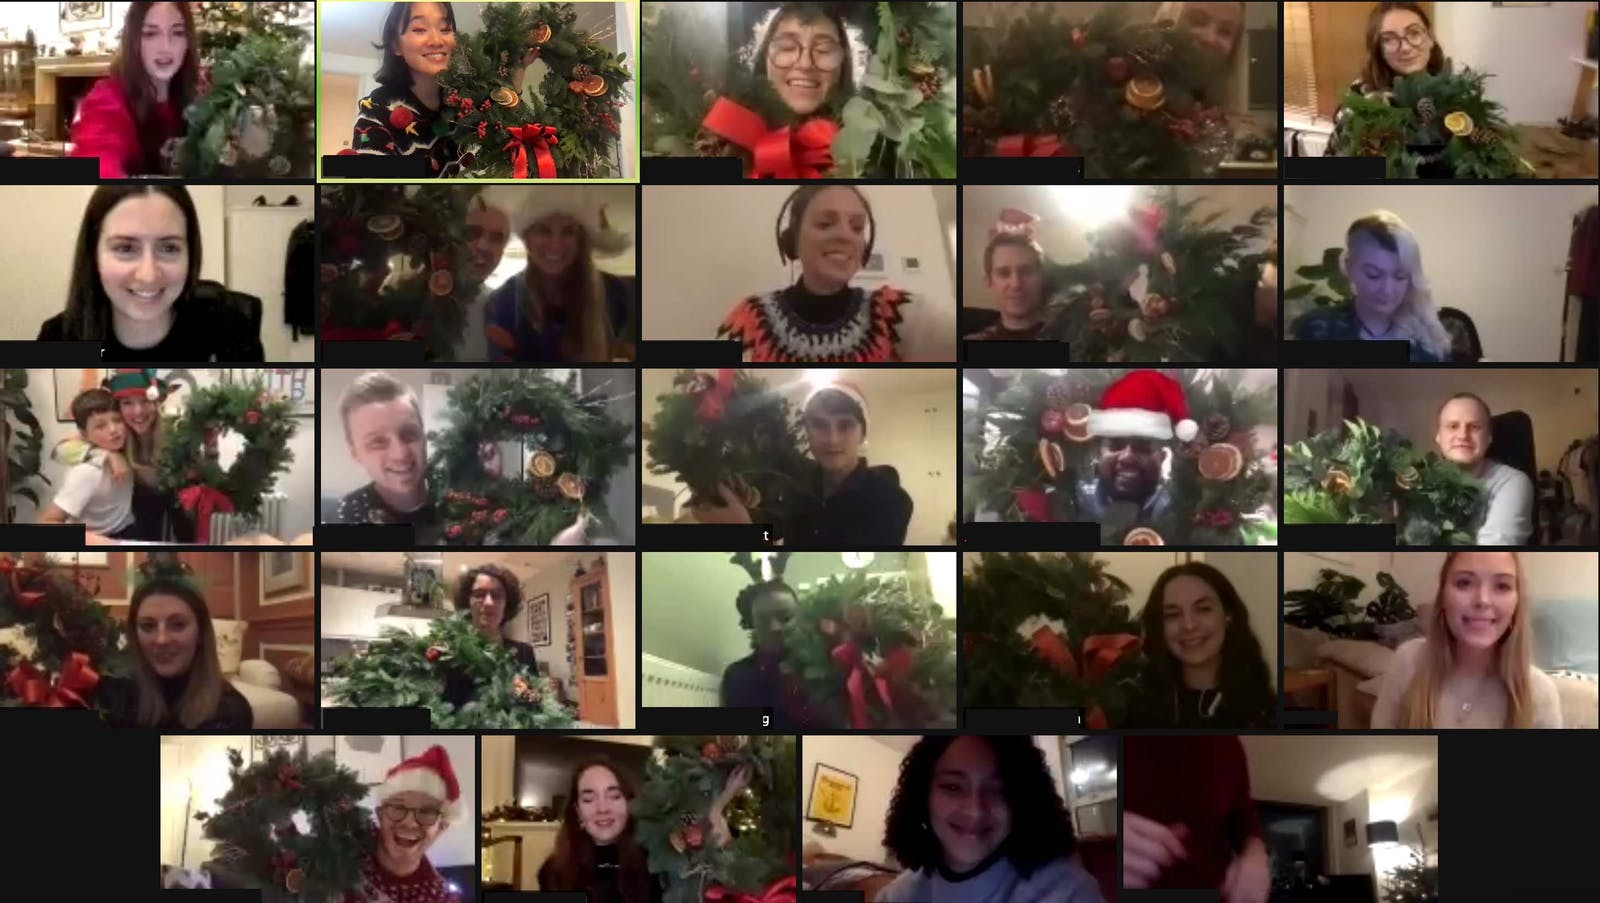 Team Lick group photo with everyone holding their homemade wreaths